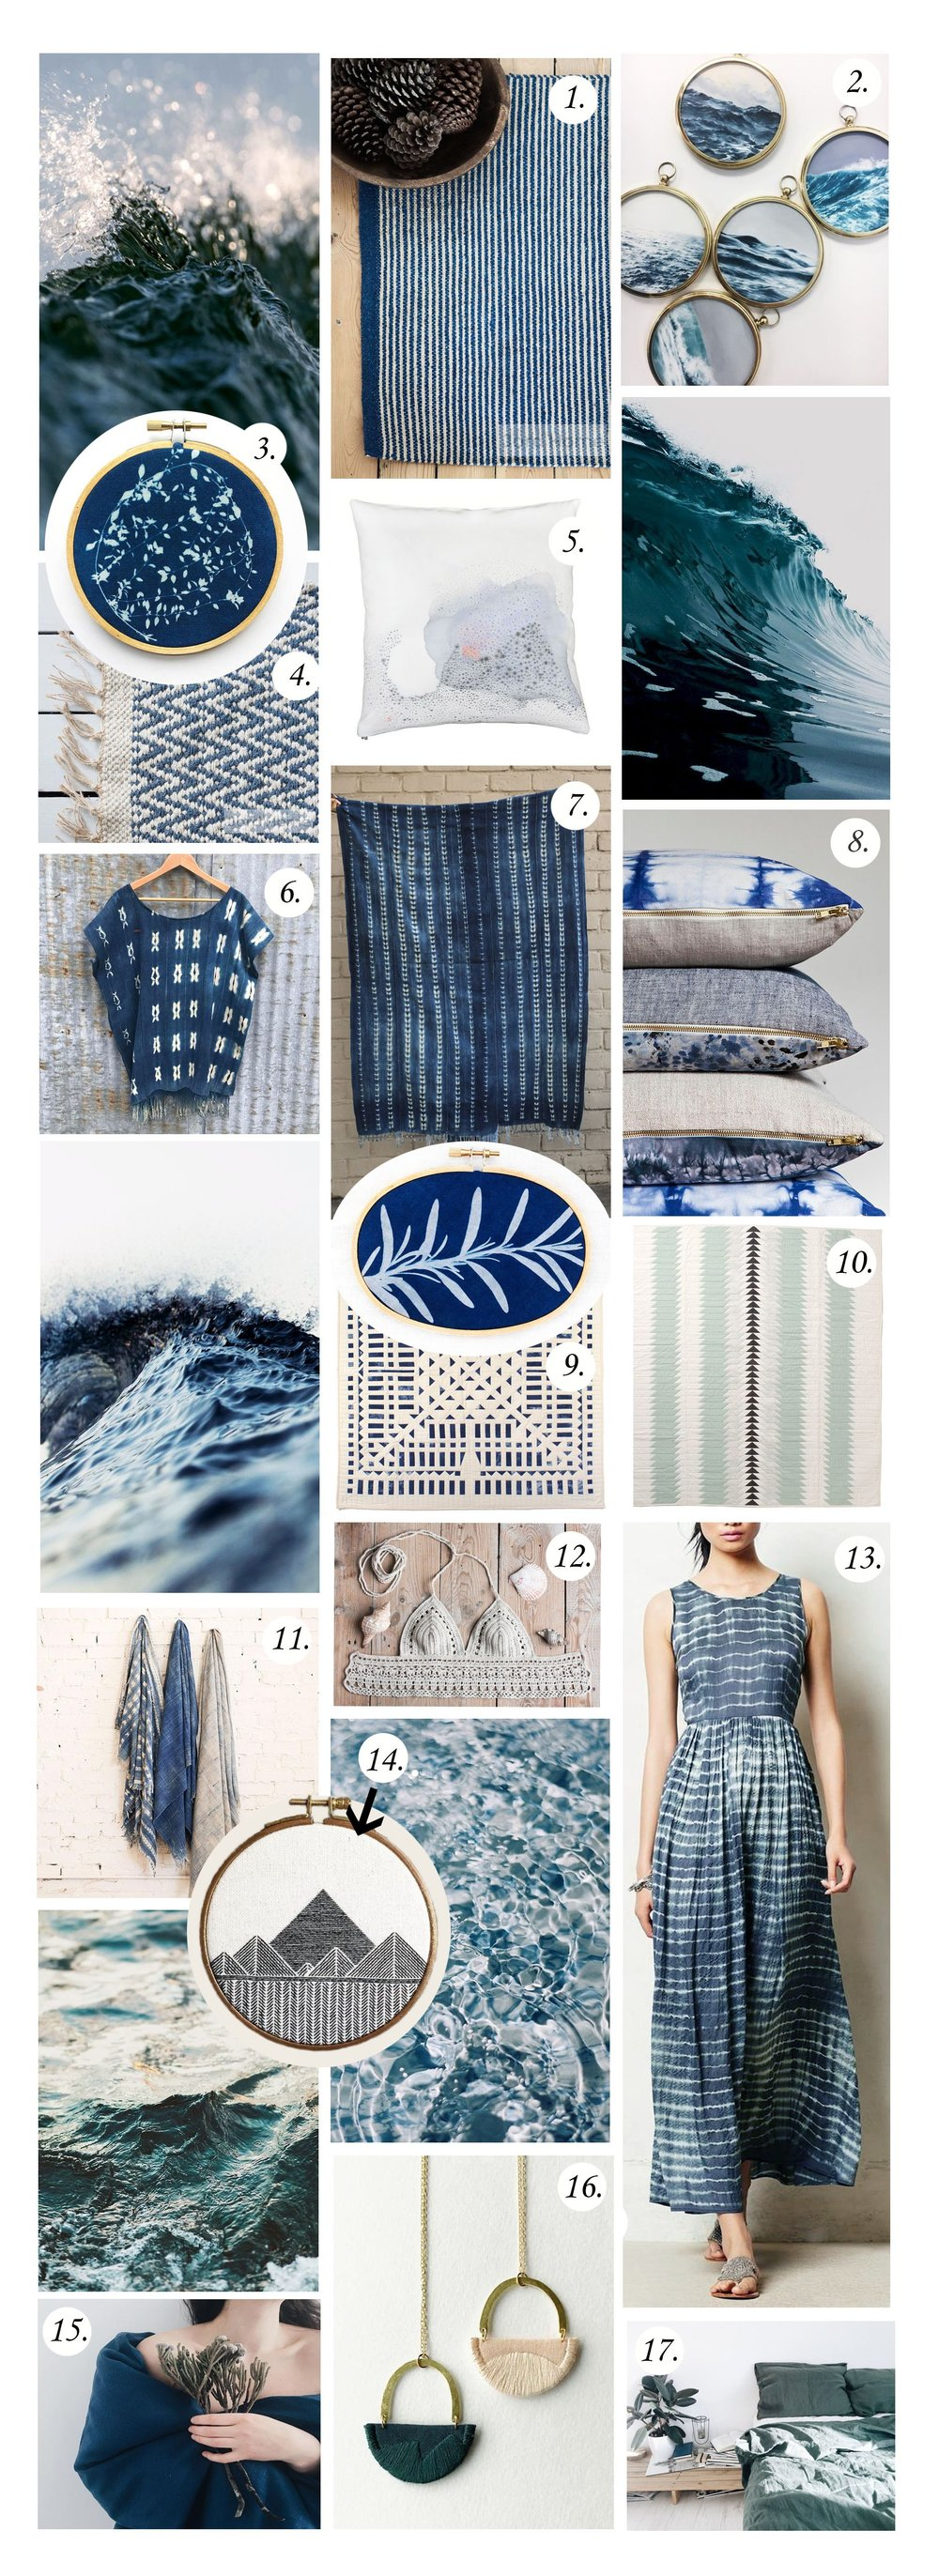 My cyanotype wall hangings were included in this beautiful mood board that  The Fiber Studio  put together this month. Look at at those lovely and serene blues!